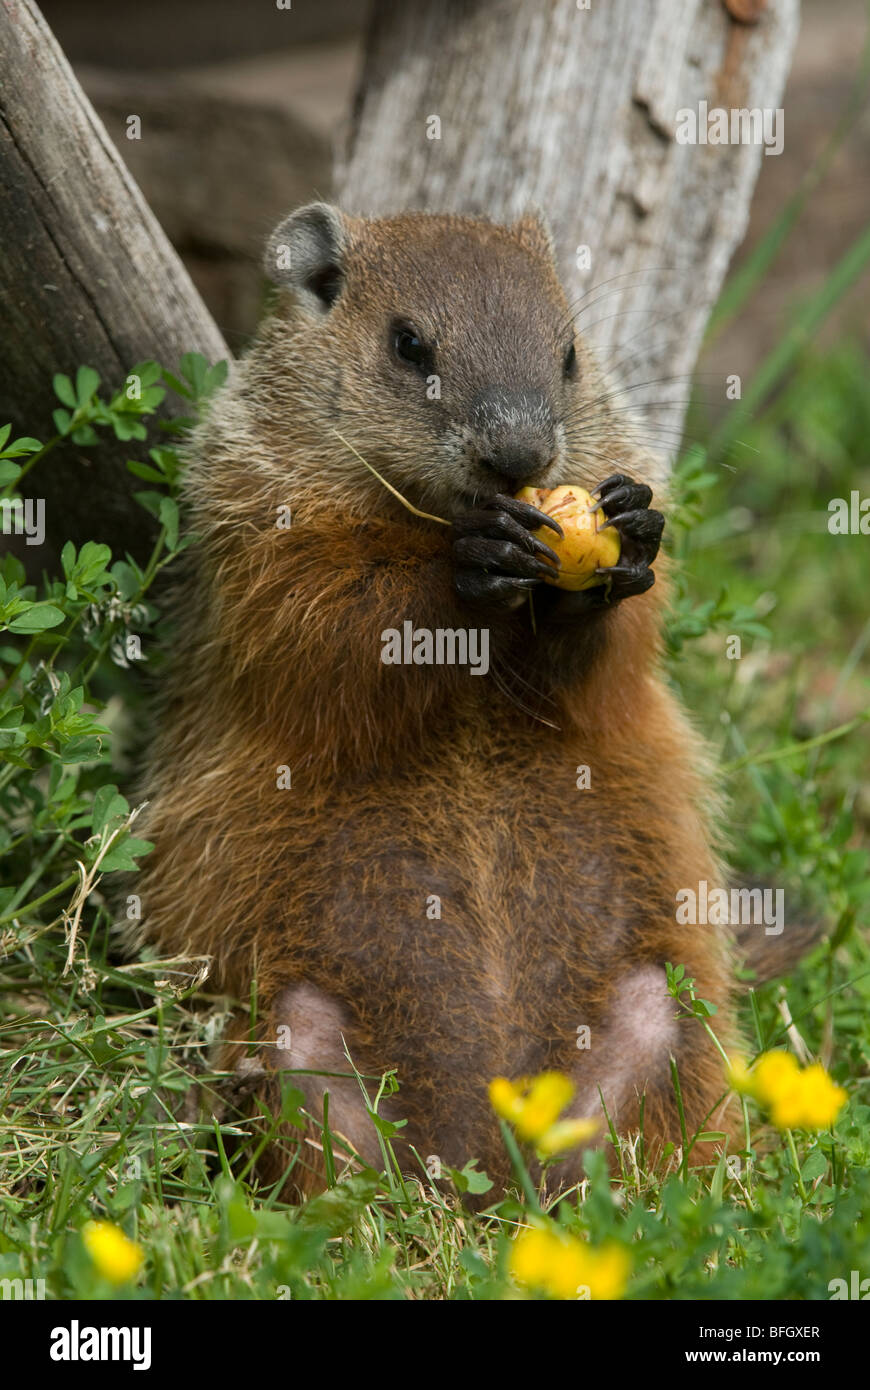 Groundhog (Marmota monax) feeding on piece of apple, Ontario, Canada - Stock Image